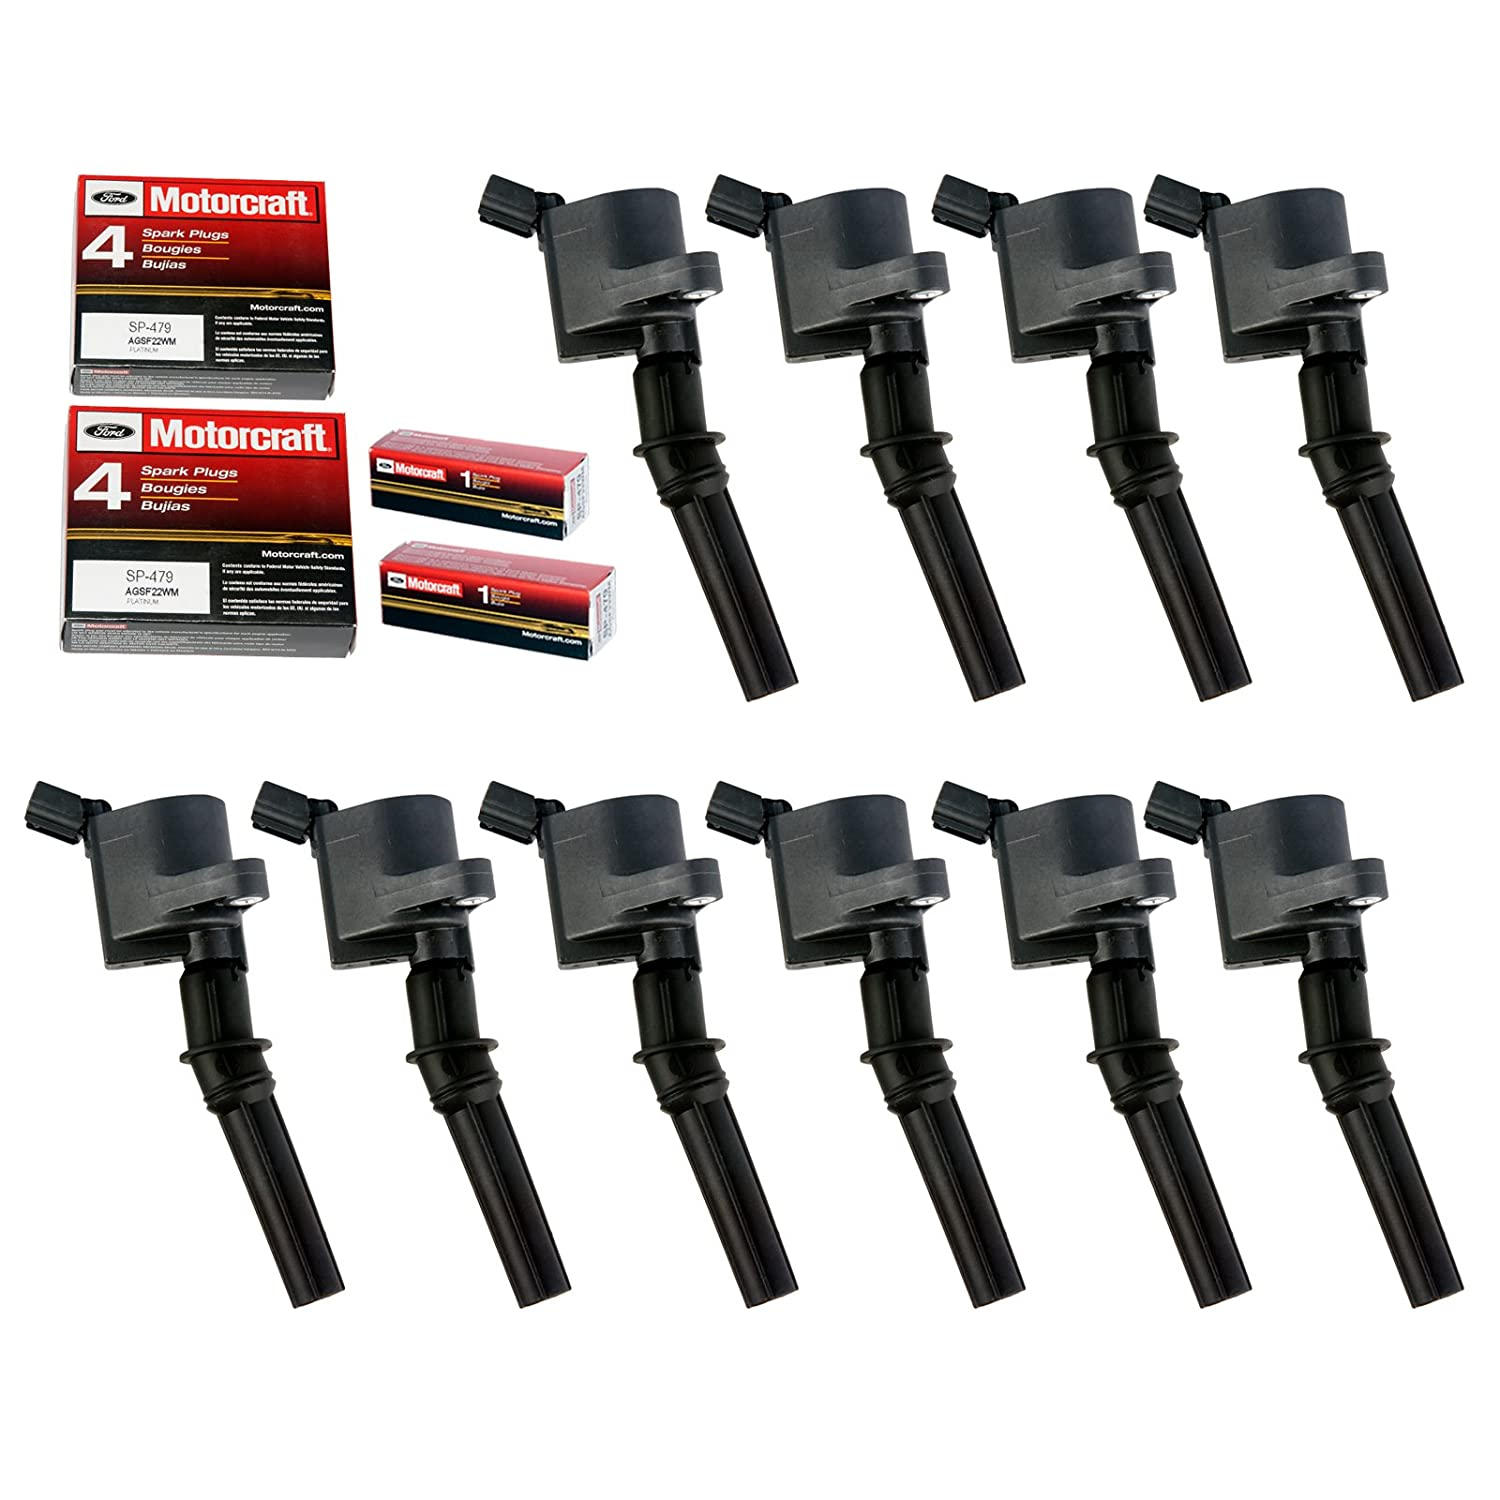 Ignition Coil DG508 for Ford 4.6L 5.4L V8 DG457 DG472 DG491 CROWN VICTORIA EXPEDITION F-150 F-250 MUSTANG LINCOLN MERCURY EXPLORER 3W7Z-12029-AA (Set of 10 ...